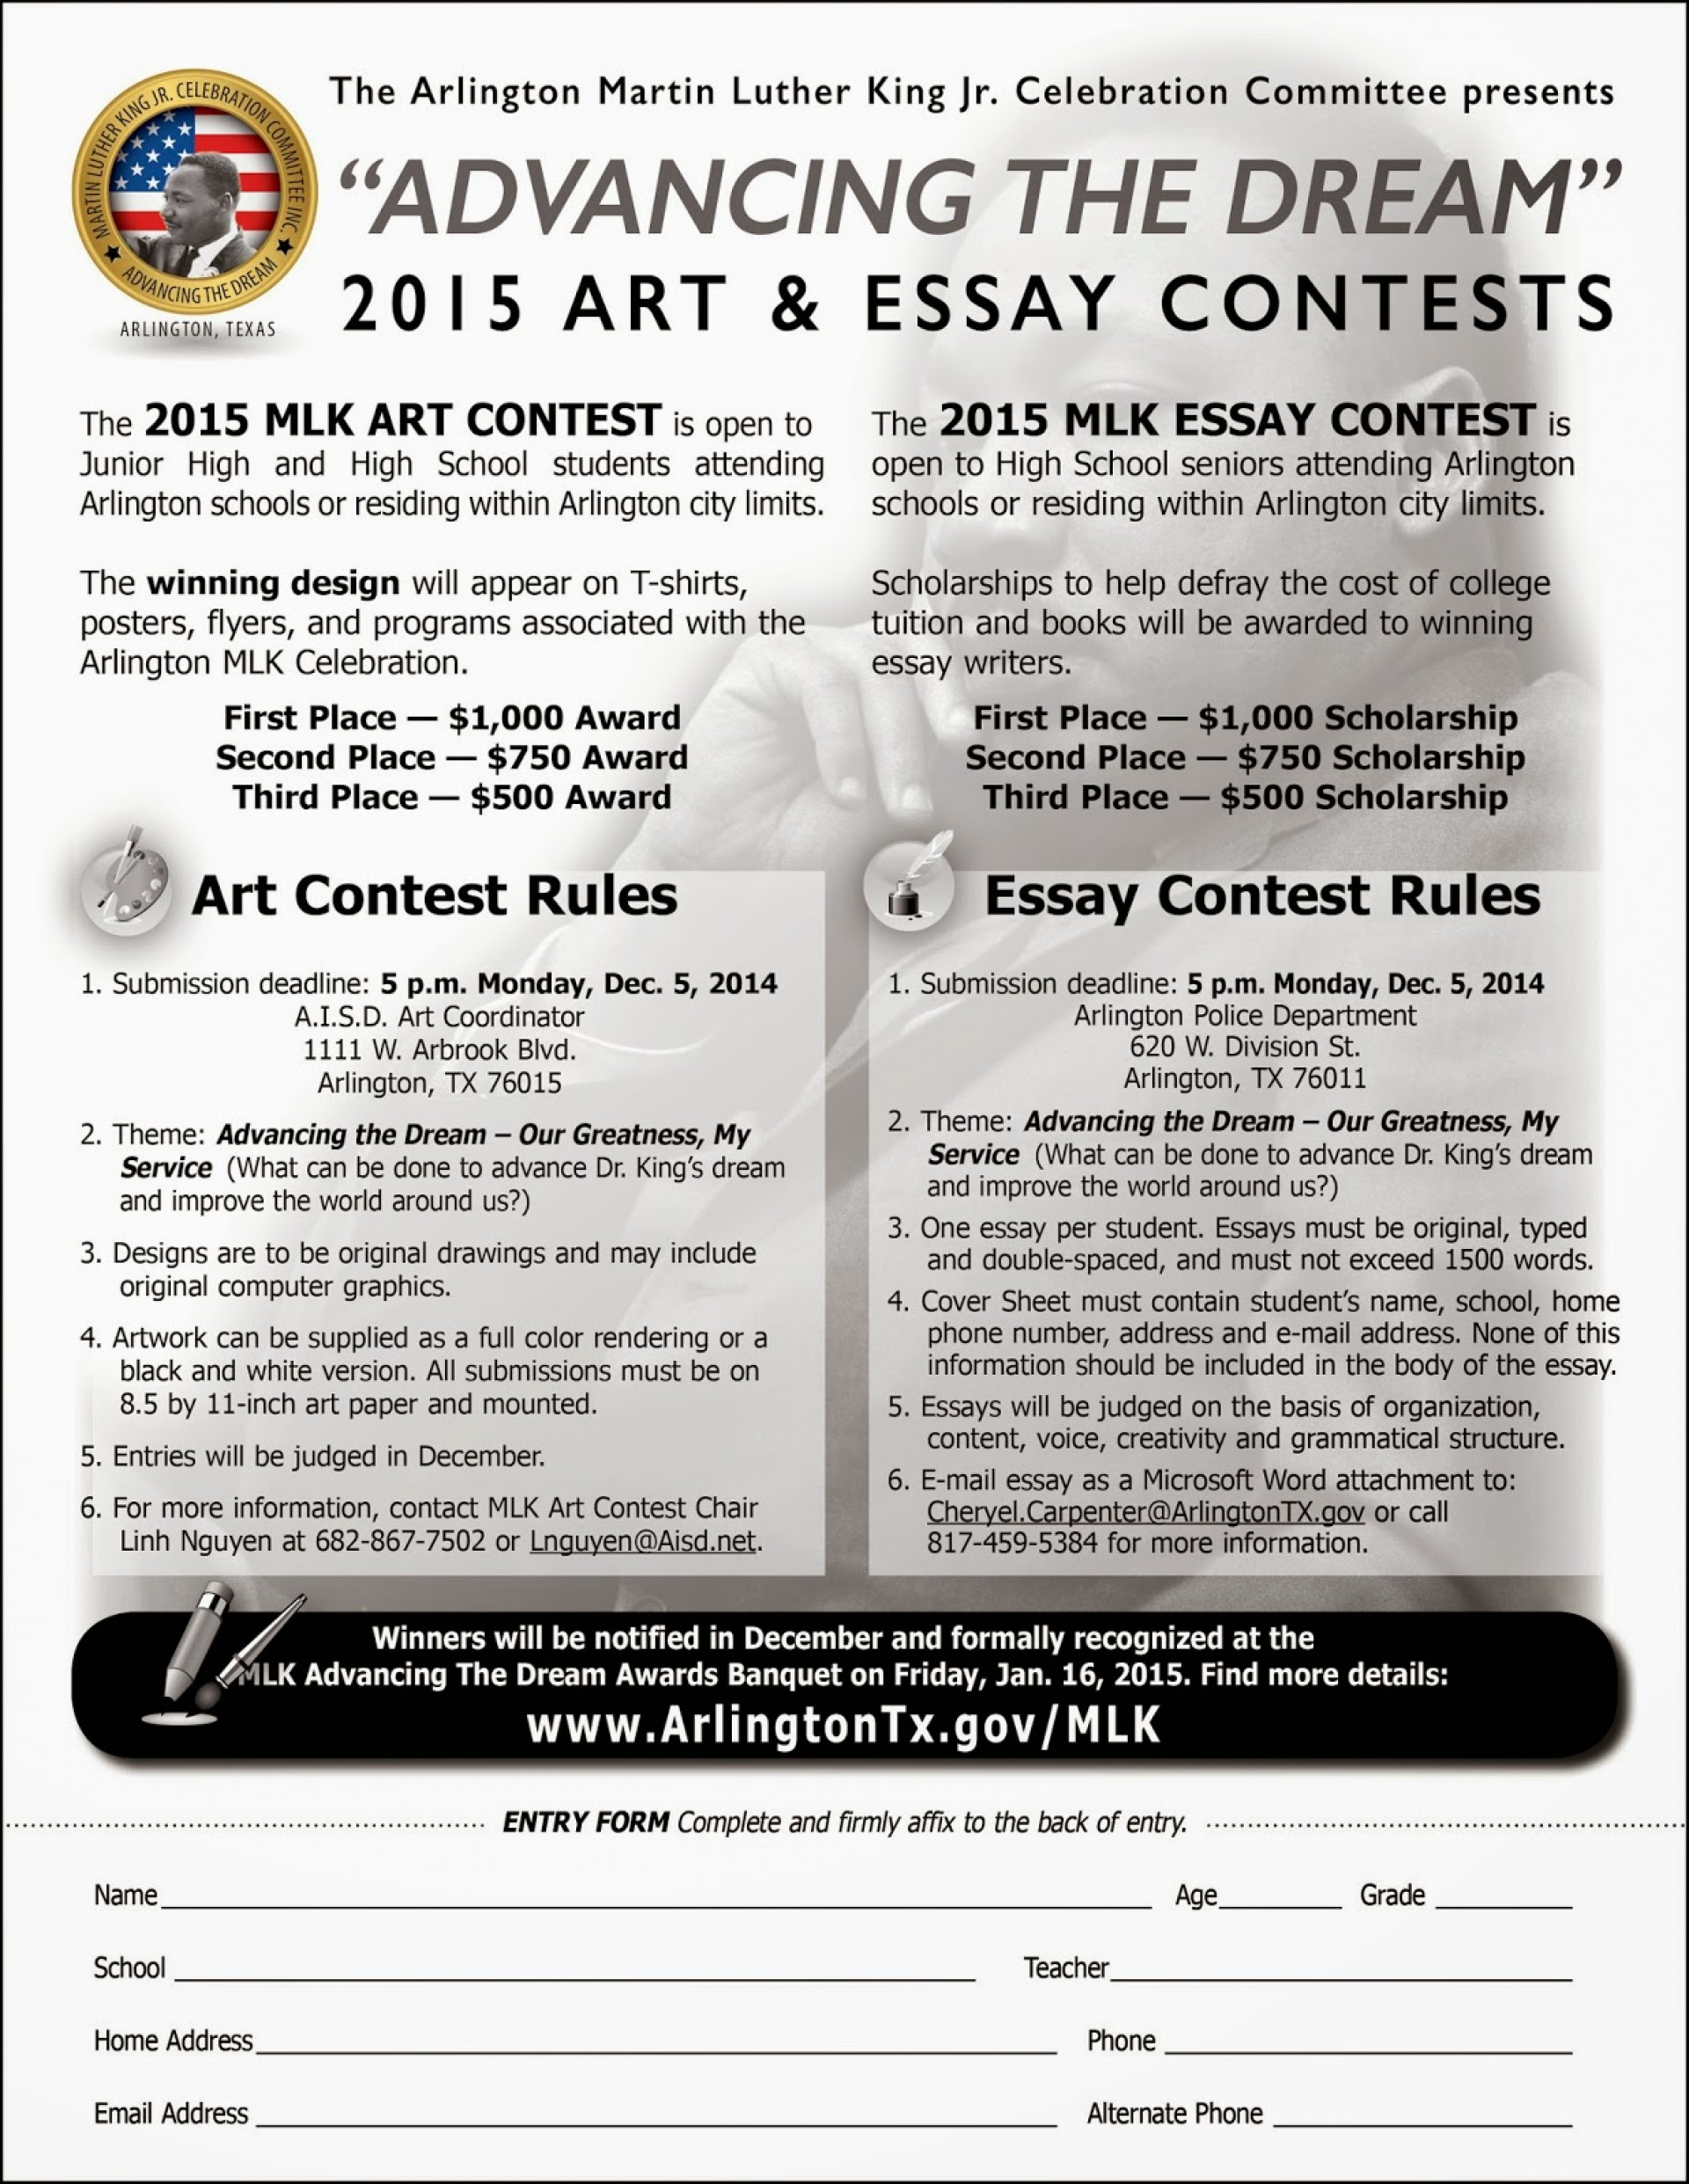 011 Essay Example Art2band2bessay2bcontest2bflyer2b2015 Best Mlk Ideas Intro Contest Winners 2018 1920